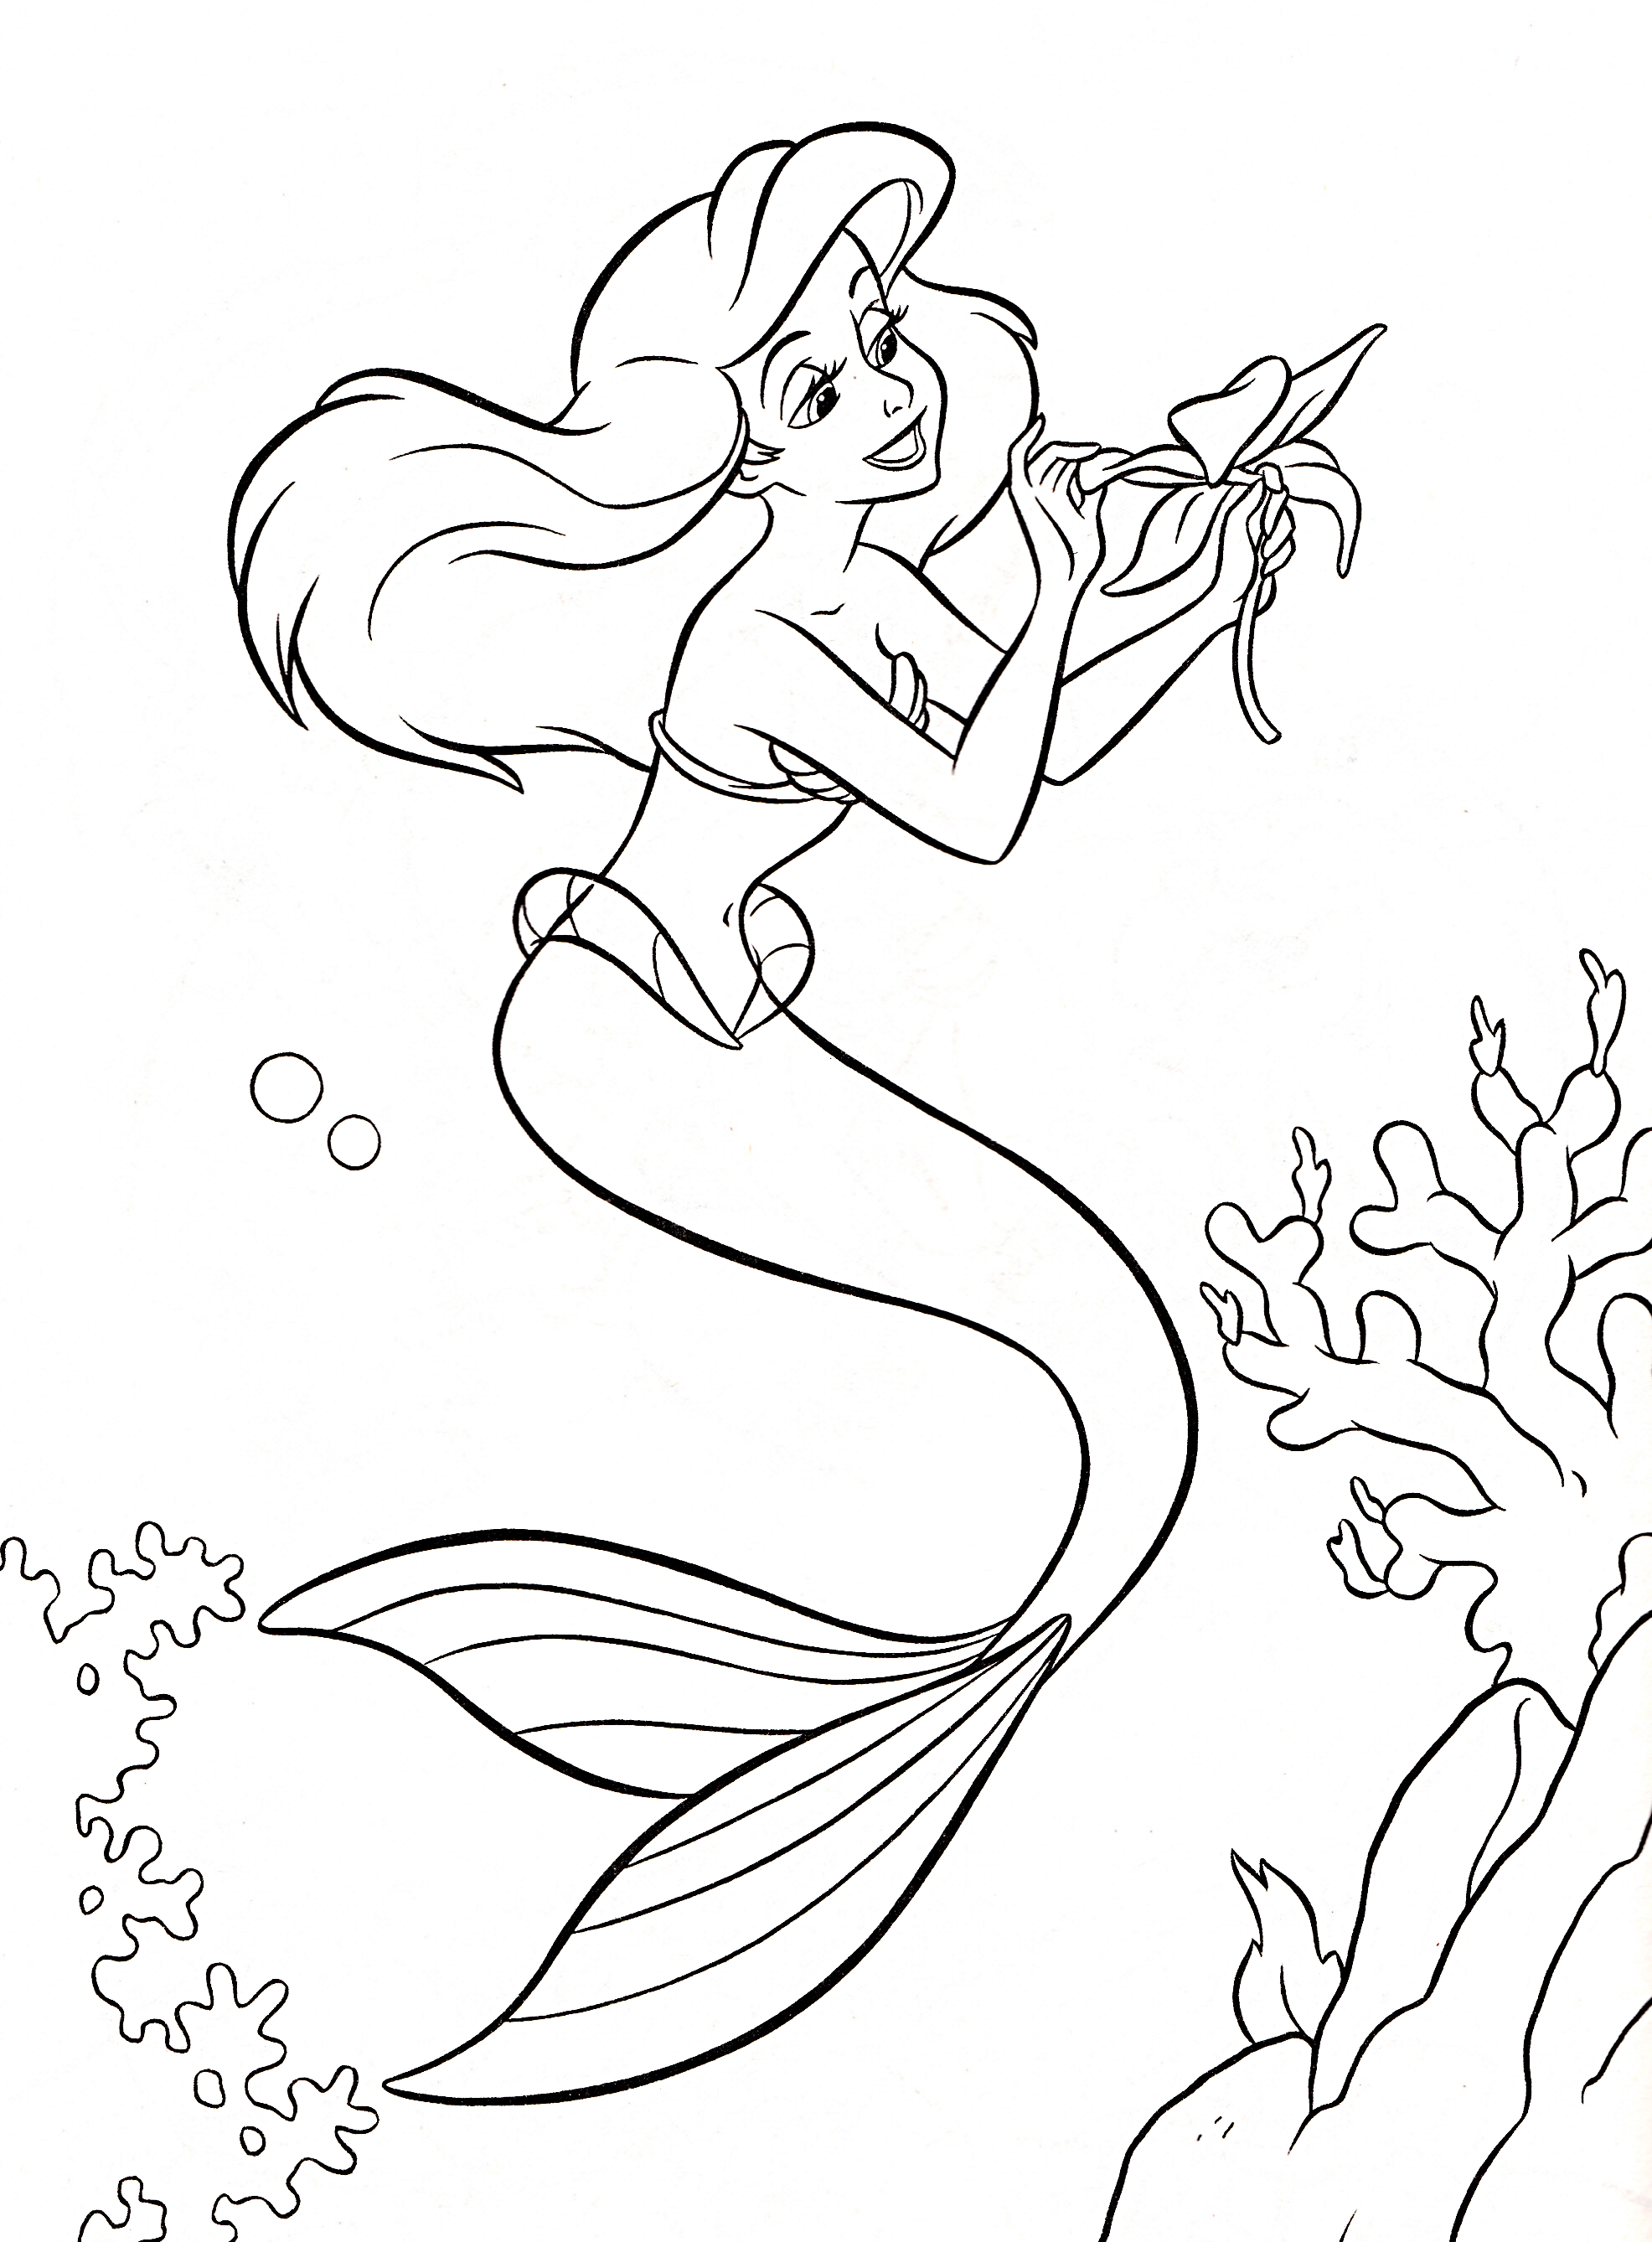 disnep coloring pages - photo#21